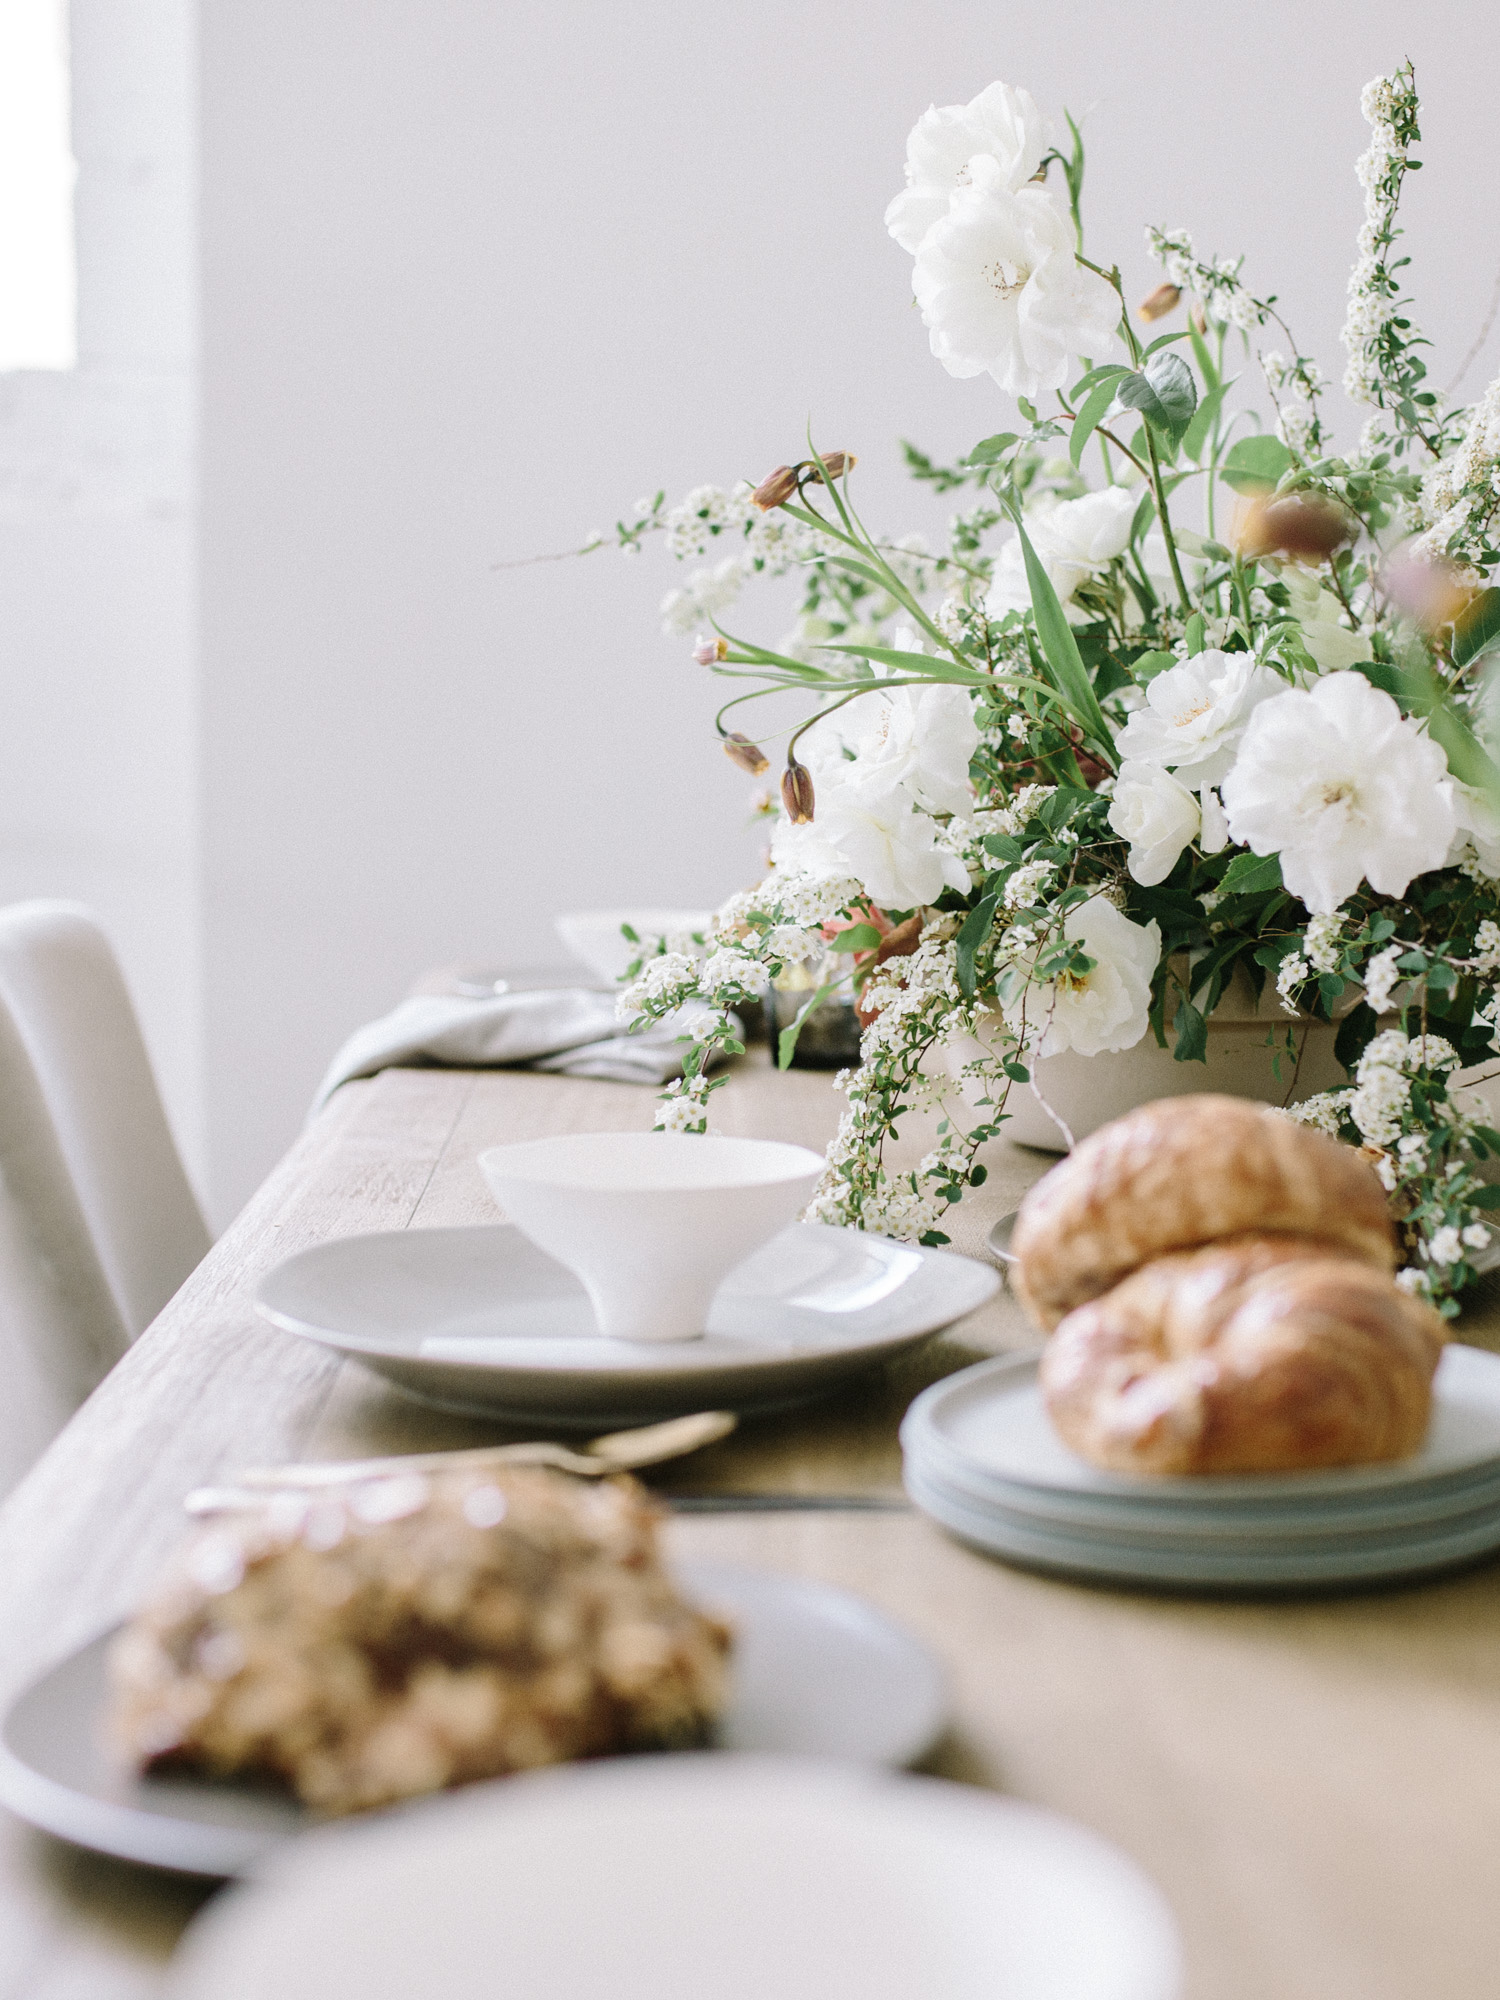 Bowls, plates, croissants, and a spring floral centerpiece rest on a table